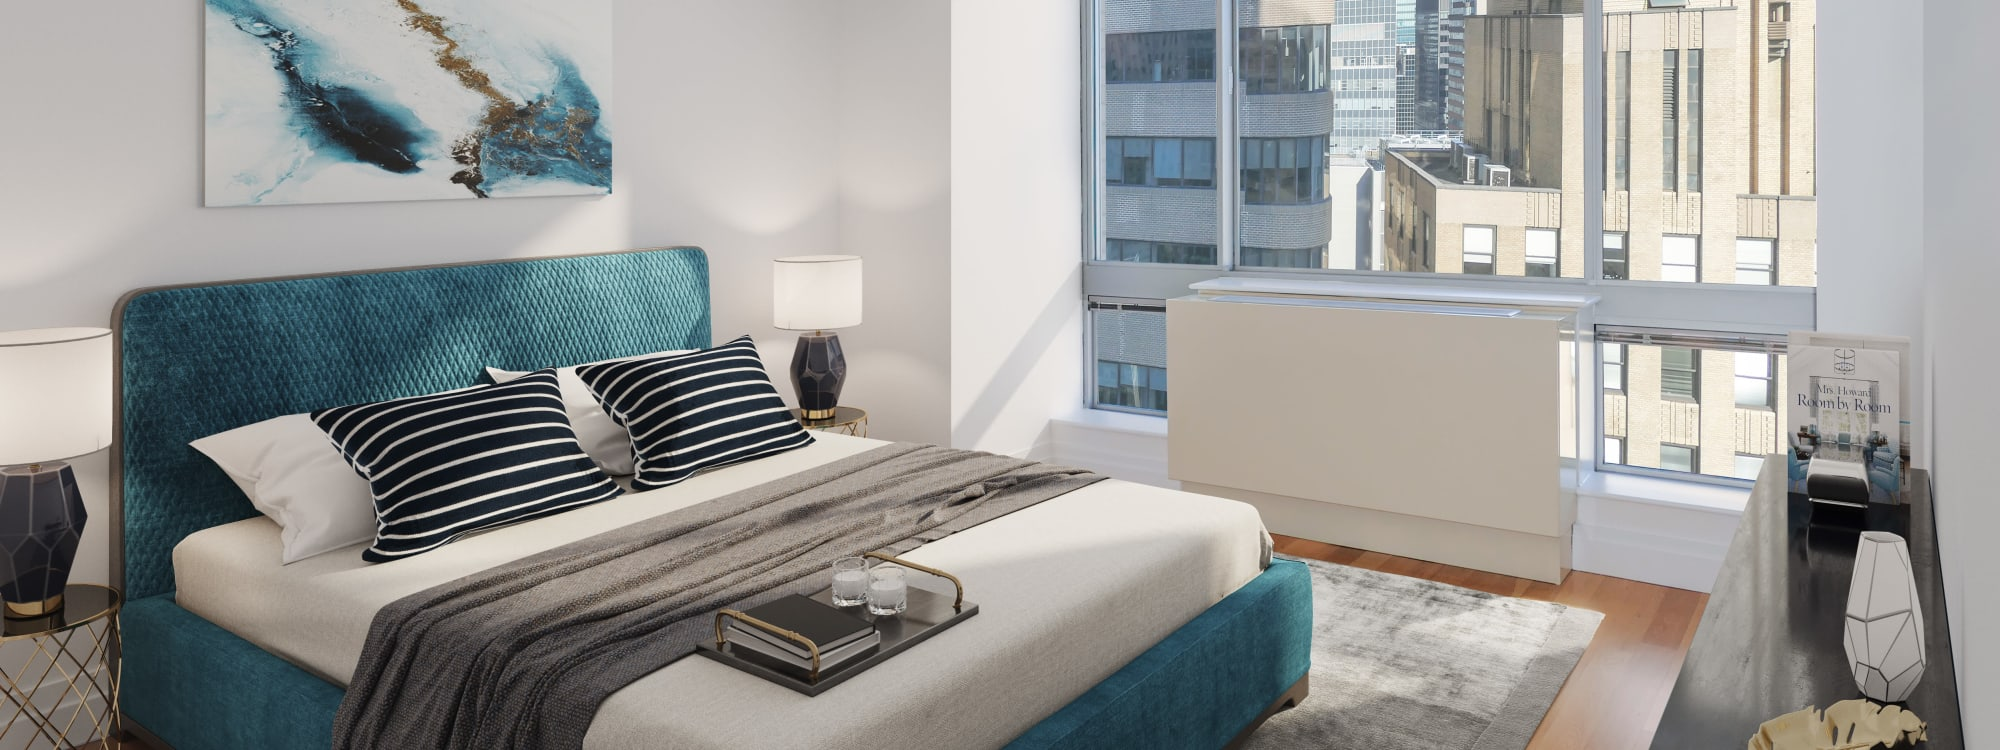 Availability at The Metropolis in New York, New York